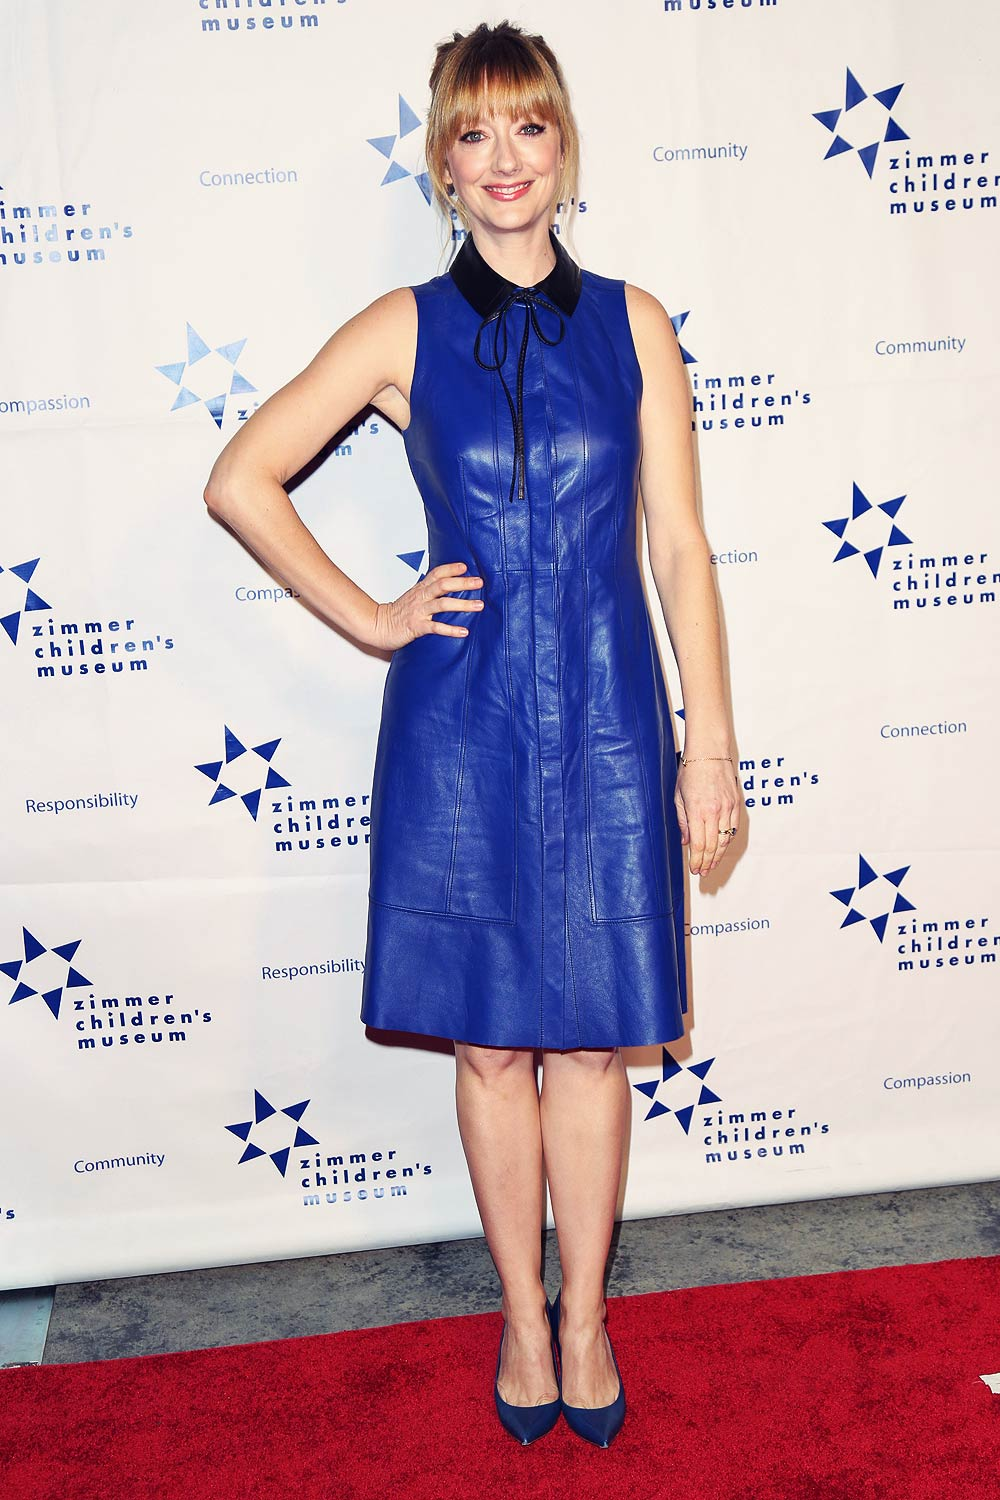 Judy Greer attends 15th Annual Zimmer Children's Museum Discovery Award Dinner